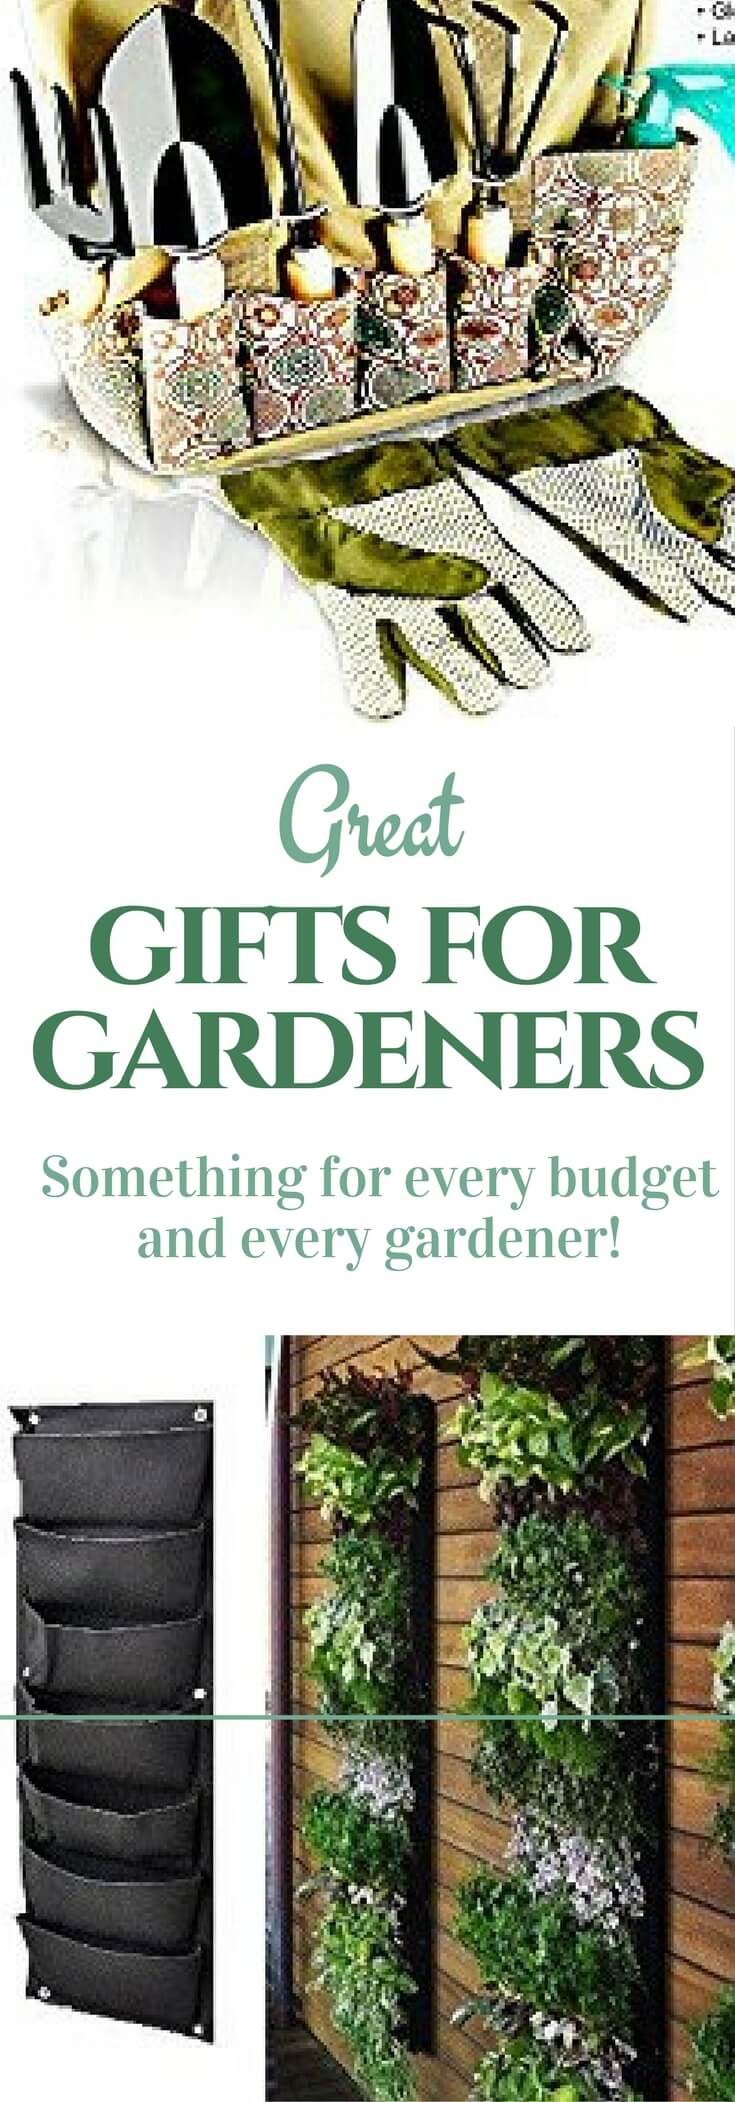 inspirations australia for have small gardeners photos designs the who garden gifts pleasing and also gardens ideas extraordinary everything